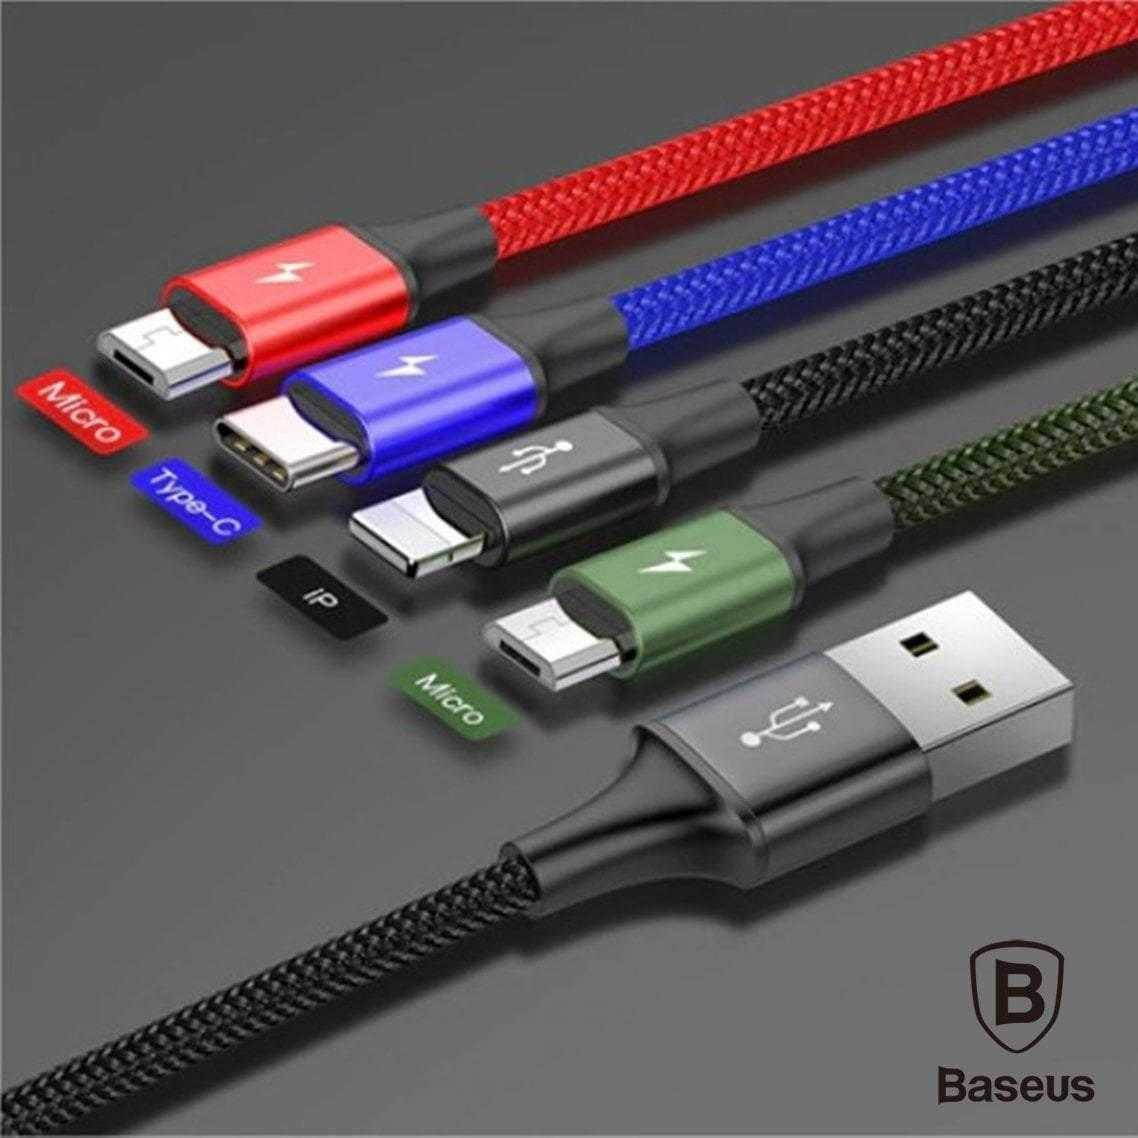 Baseus 4 in 1 Fast Charging Cable 2 Micro 1 Type-C & 1 Lightning